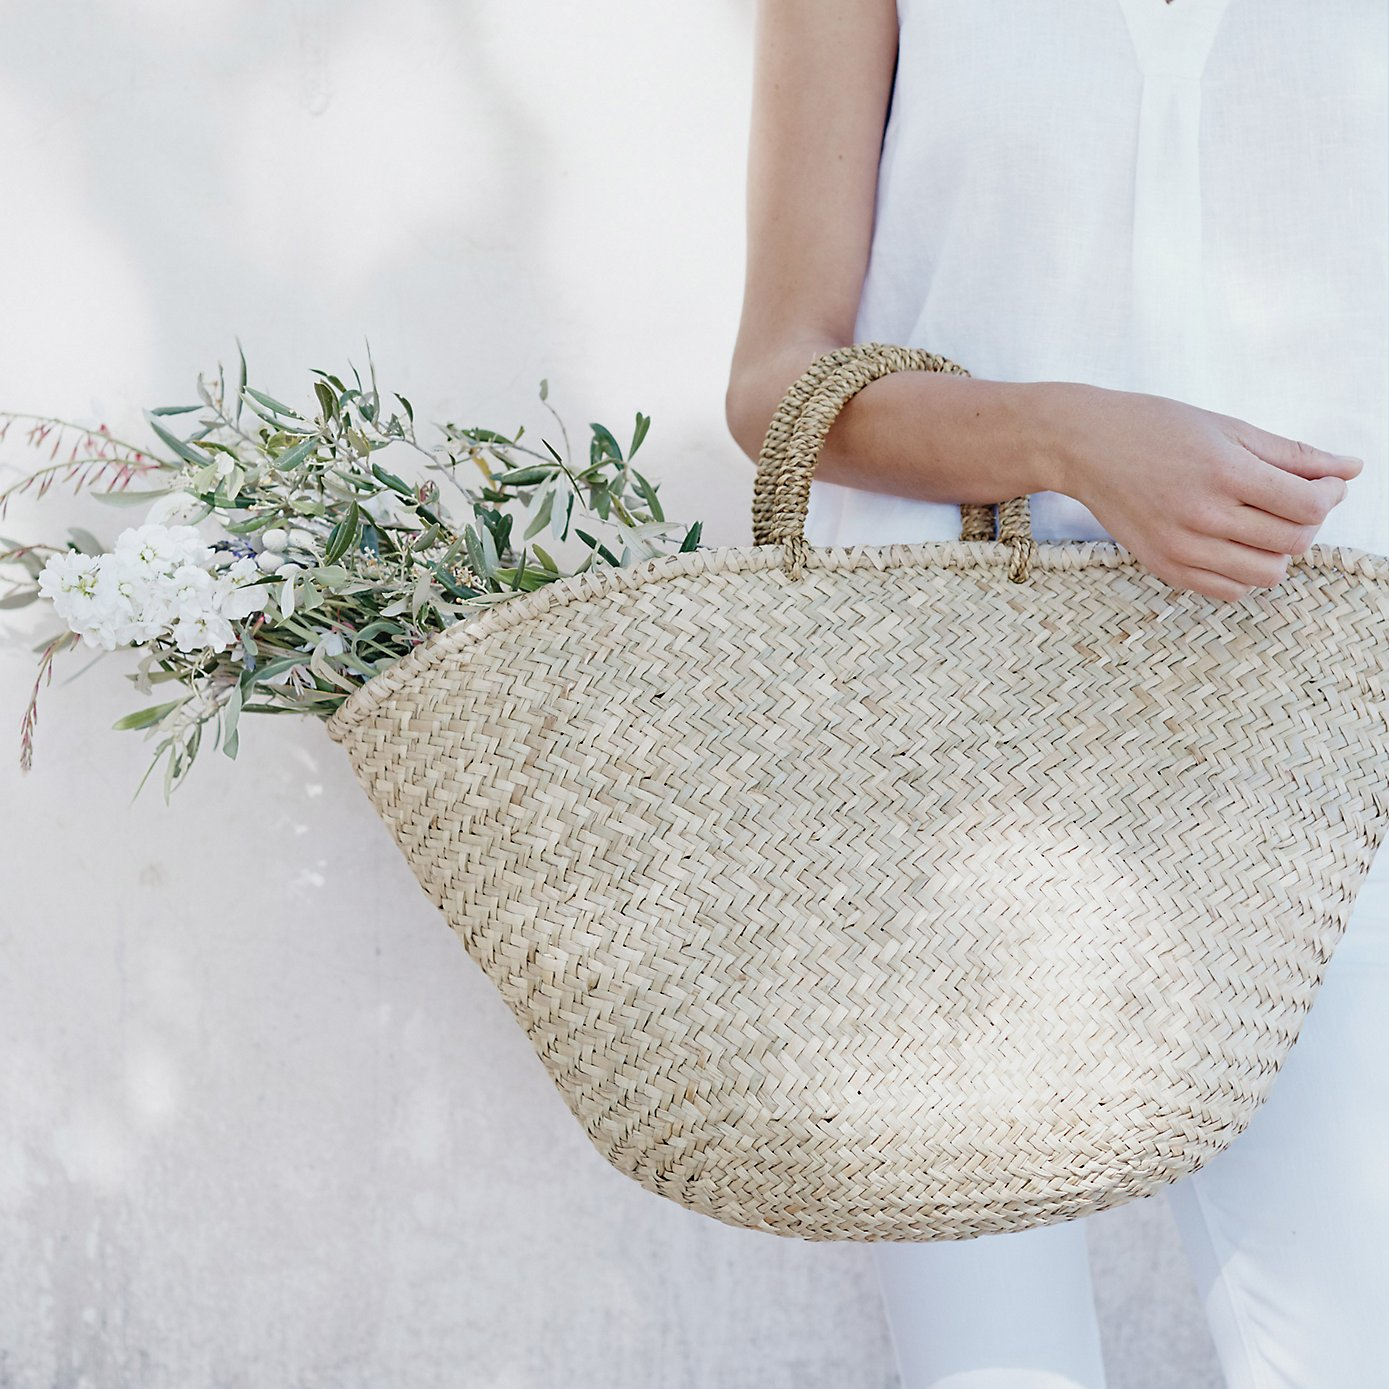 15 Favorite French Market Baskets, like this French Market Straw Basket